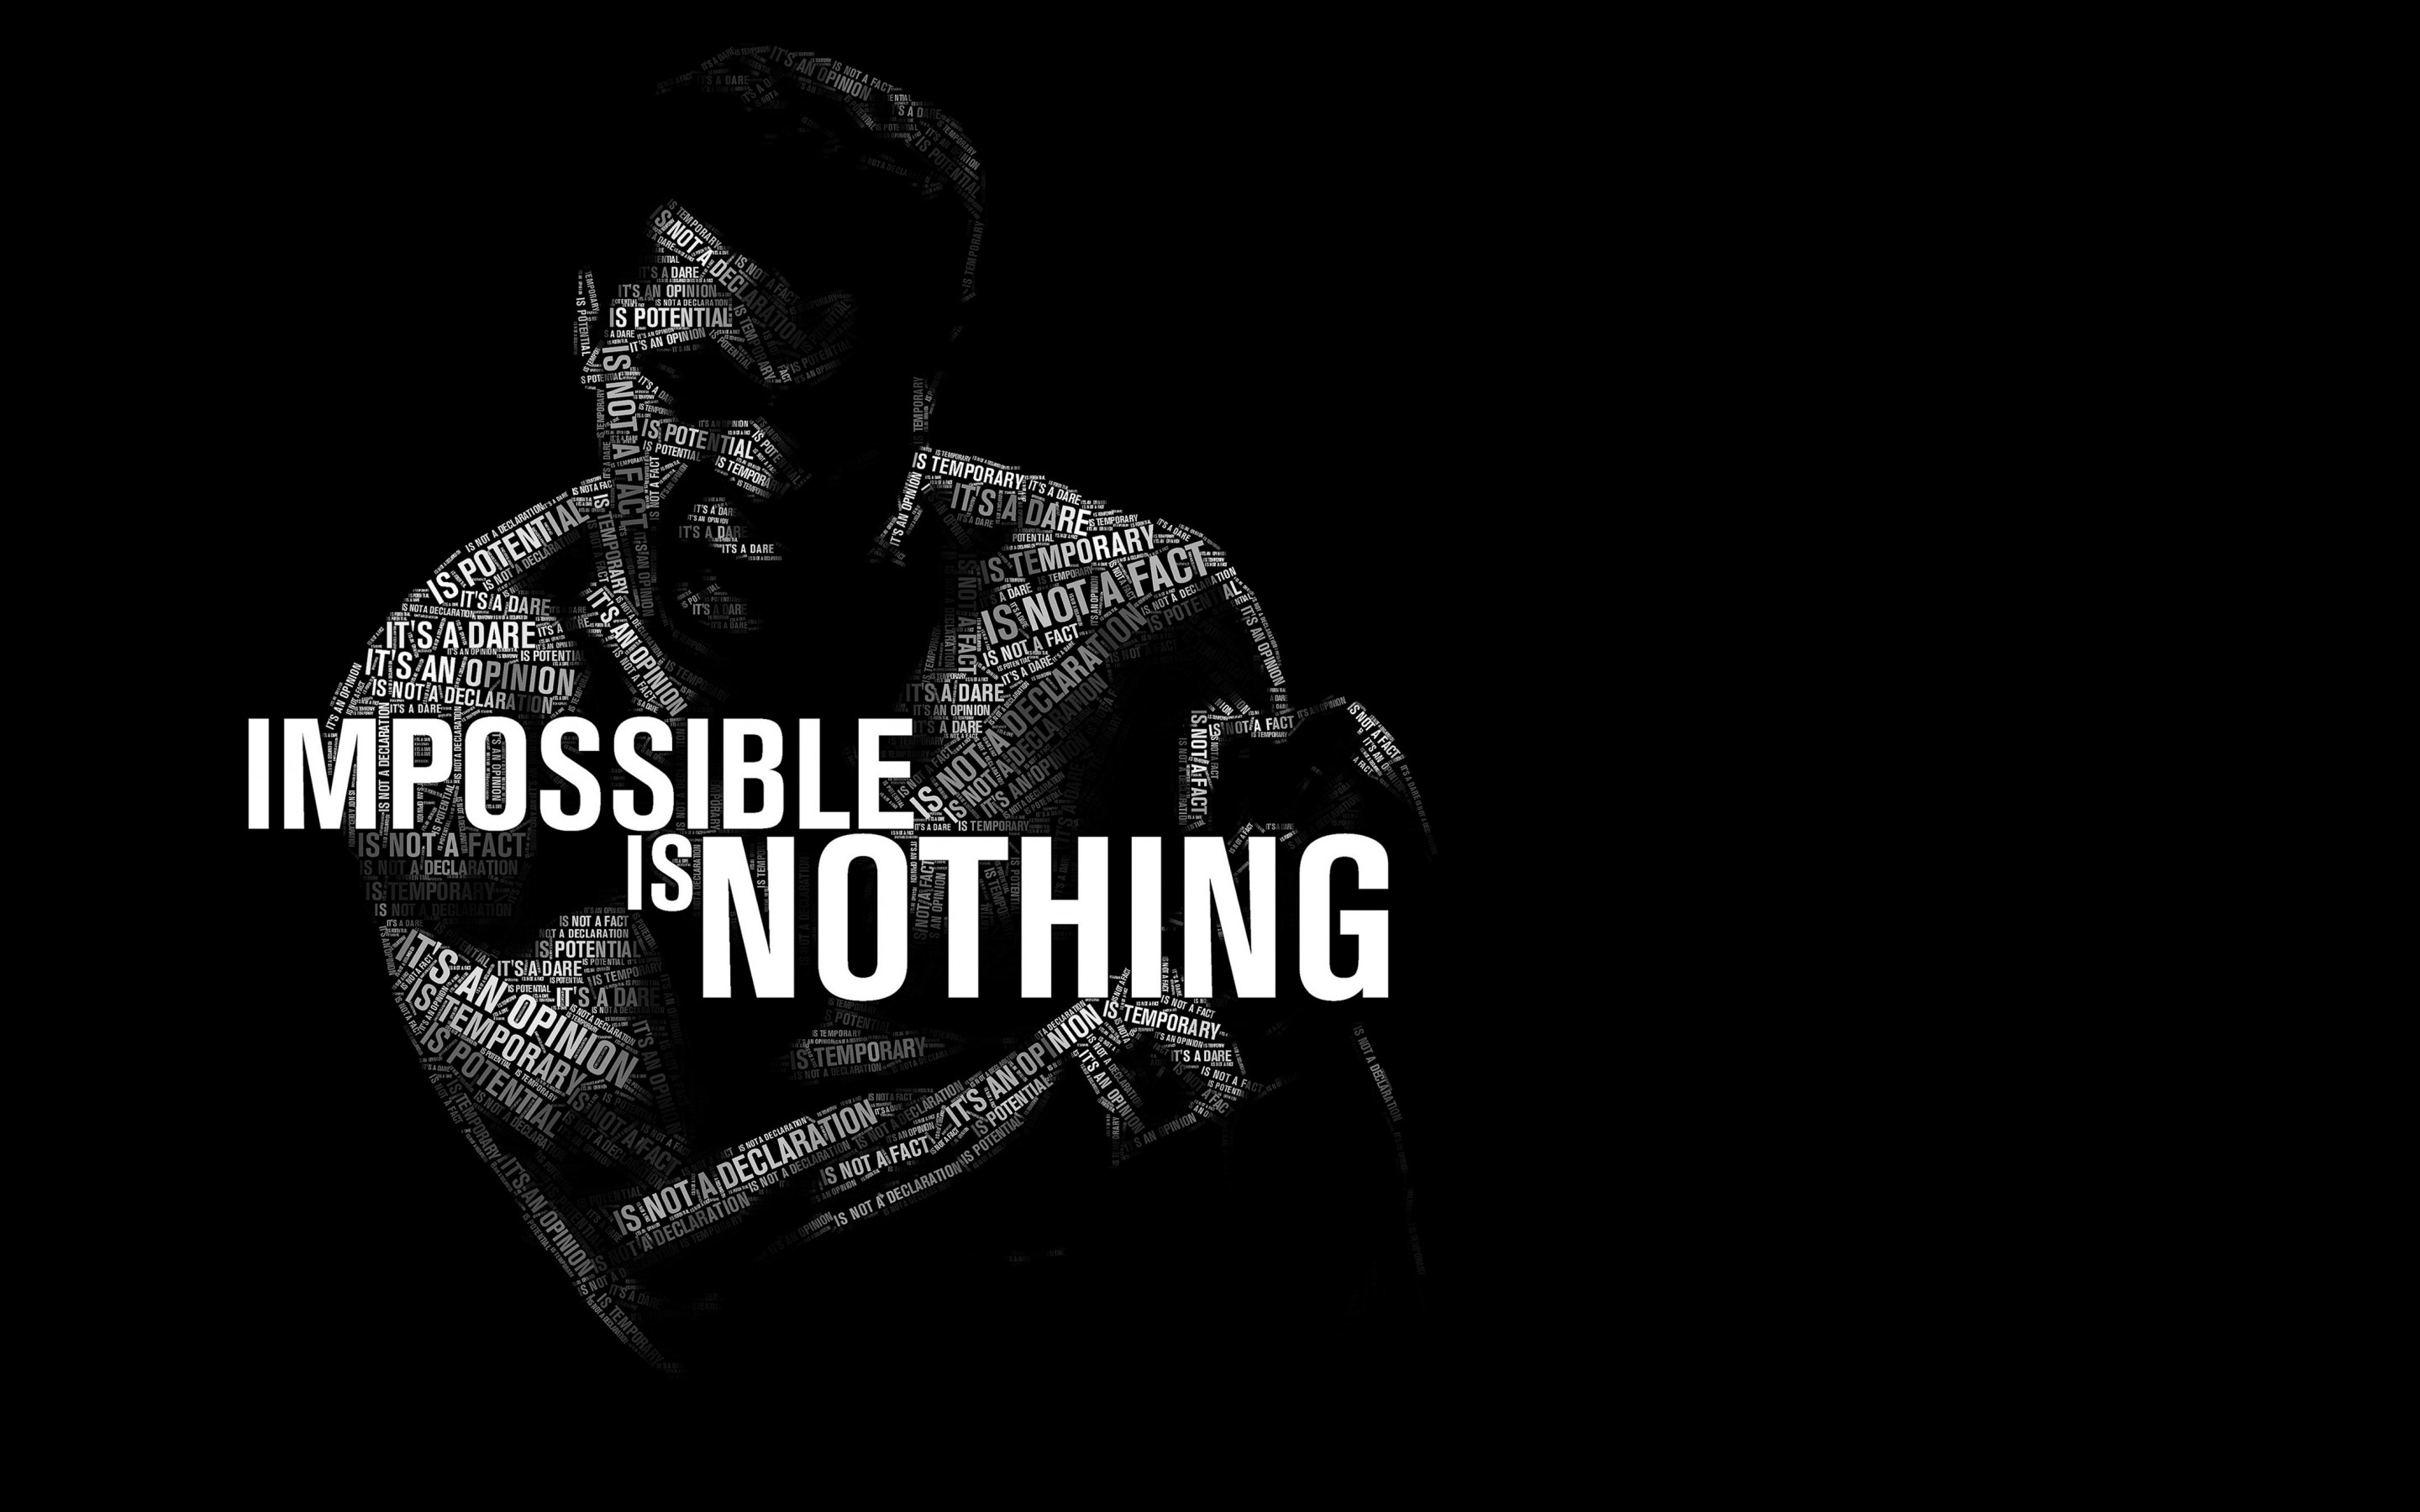 Impossible Is Nothing - Muhammad Ali Wallpaper for Desktop 2880x1800